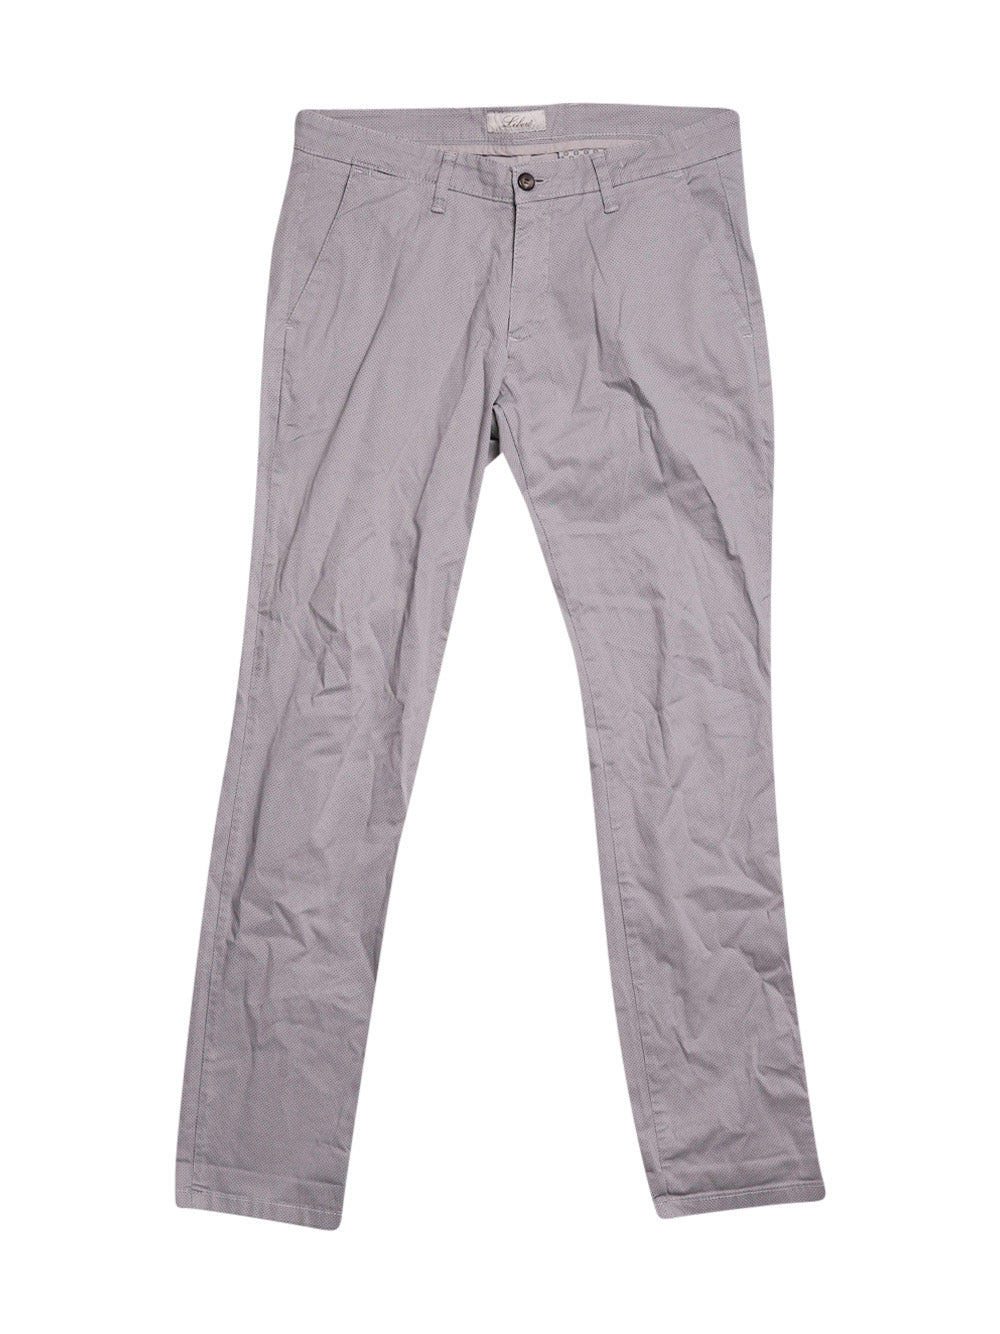 Front photo of Preloved libero Grey Man's trousers - size 38/M